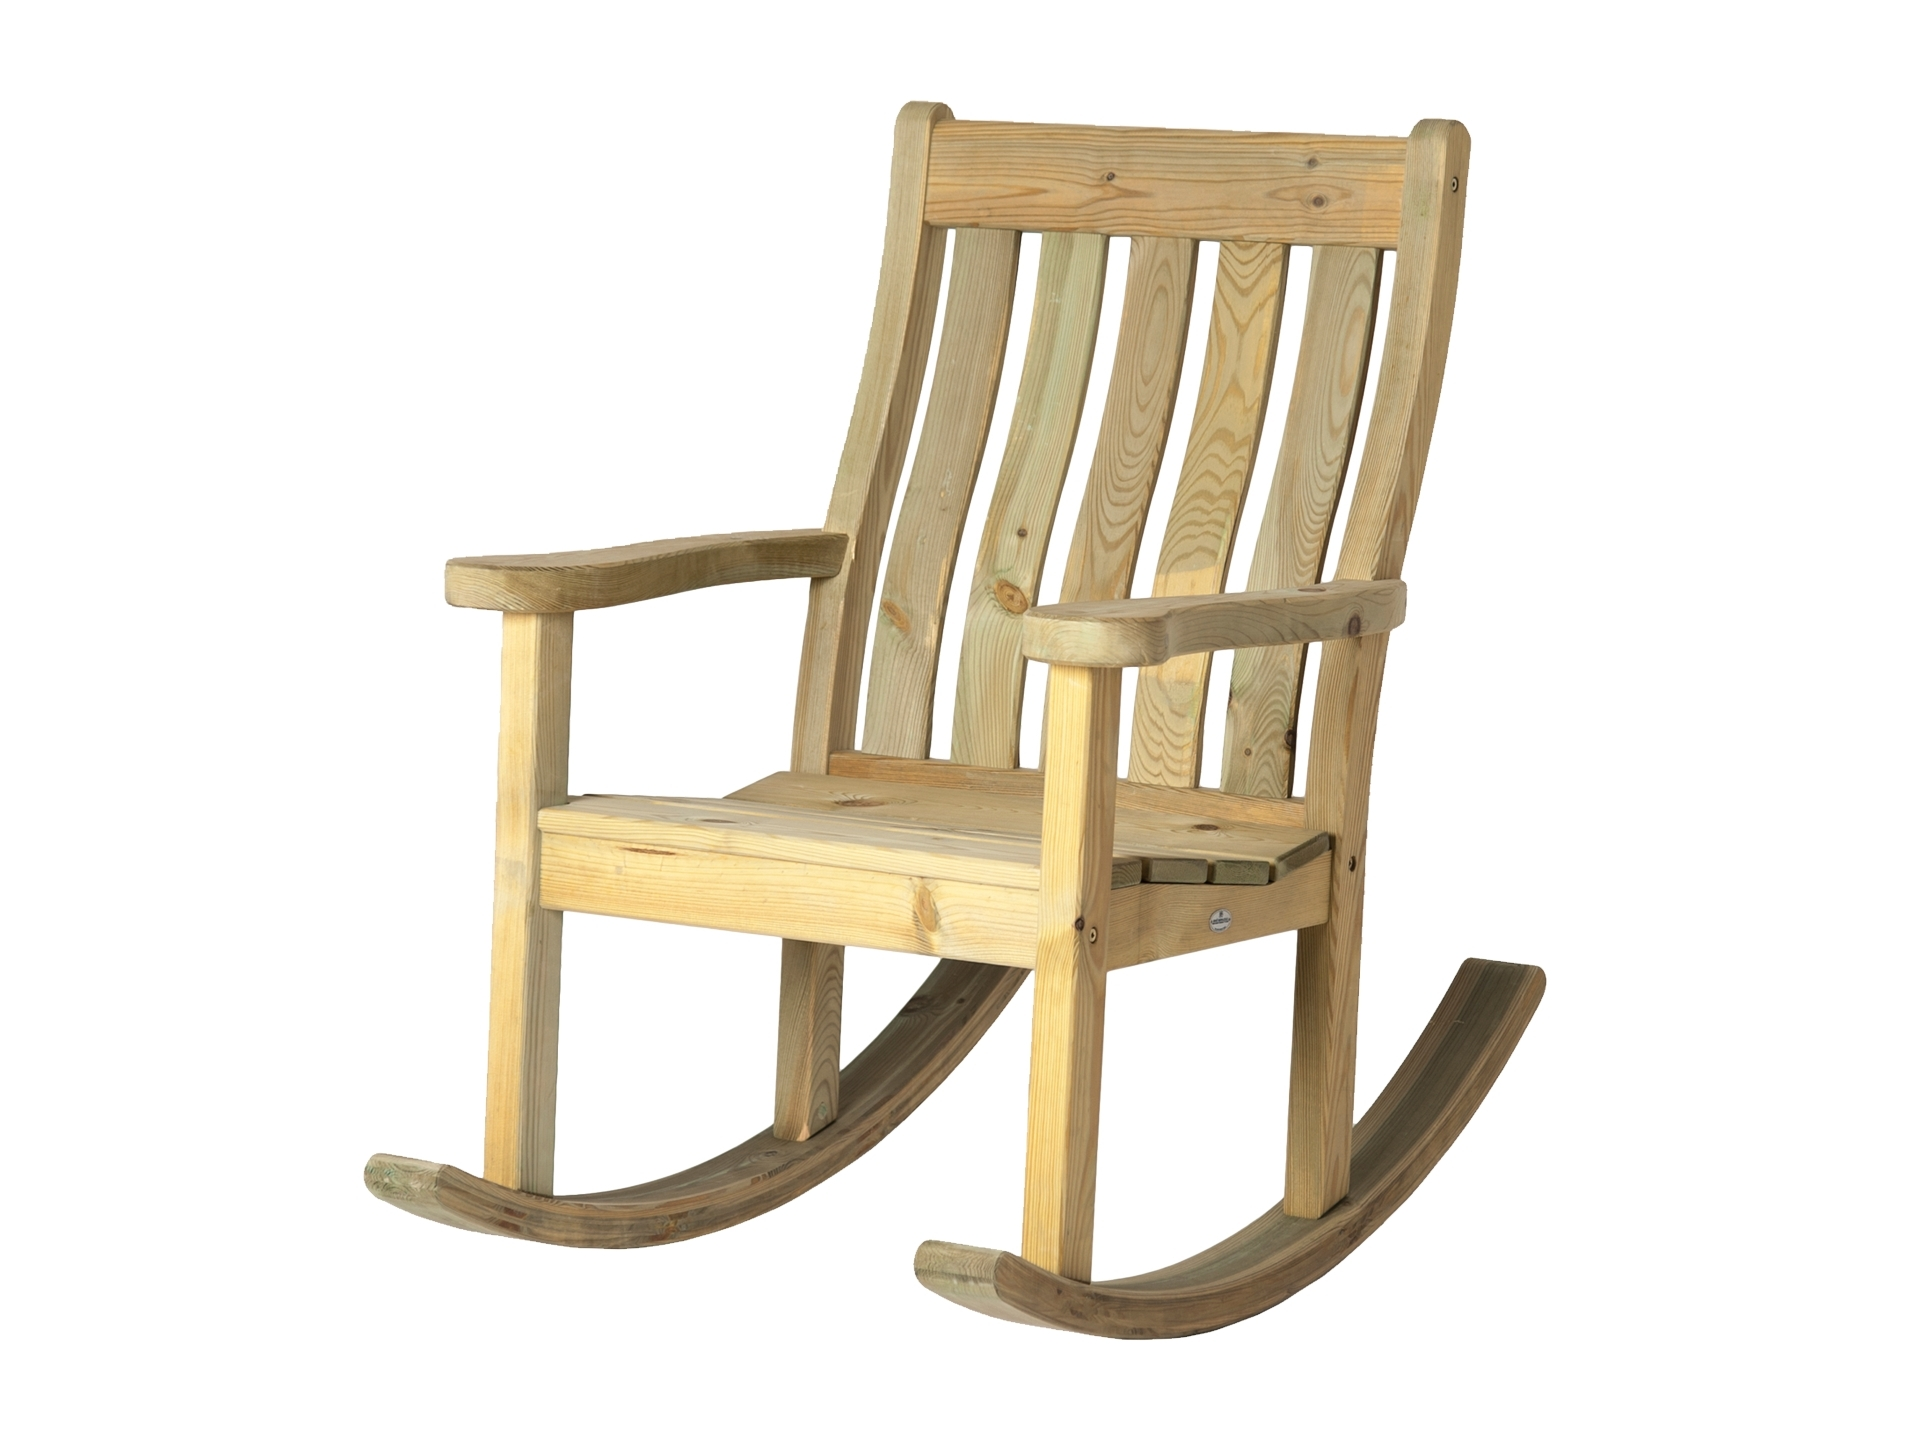 Rocking Chairs At Roses With Widely Used Pine Farmers Rocking Chair Alexander Rose Chairs Roses Baby Glider (View 2 of 15)